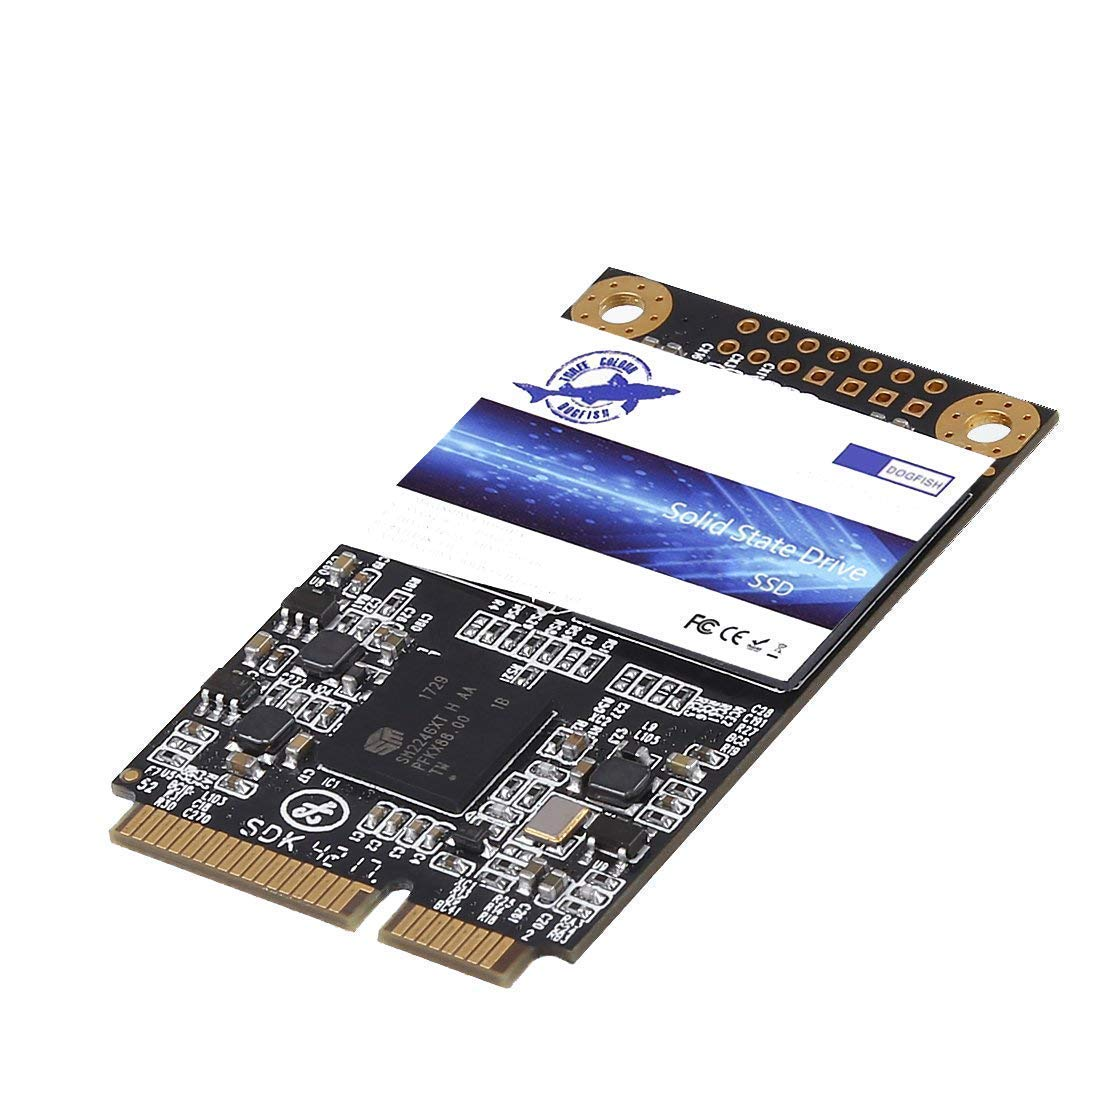 Dogfish SSD Msata 250GB Internal Solid State Drive PC Mini Sata ...